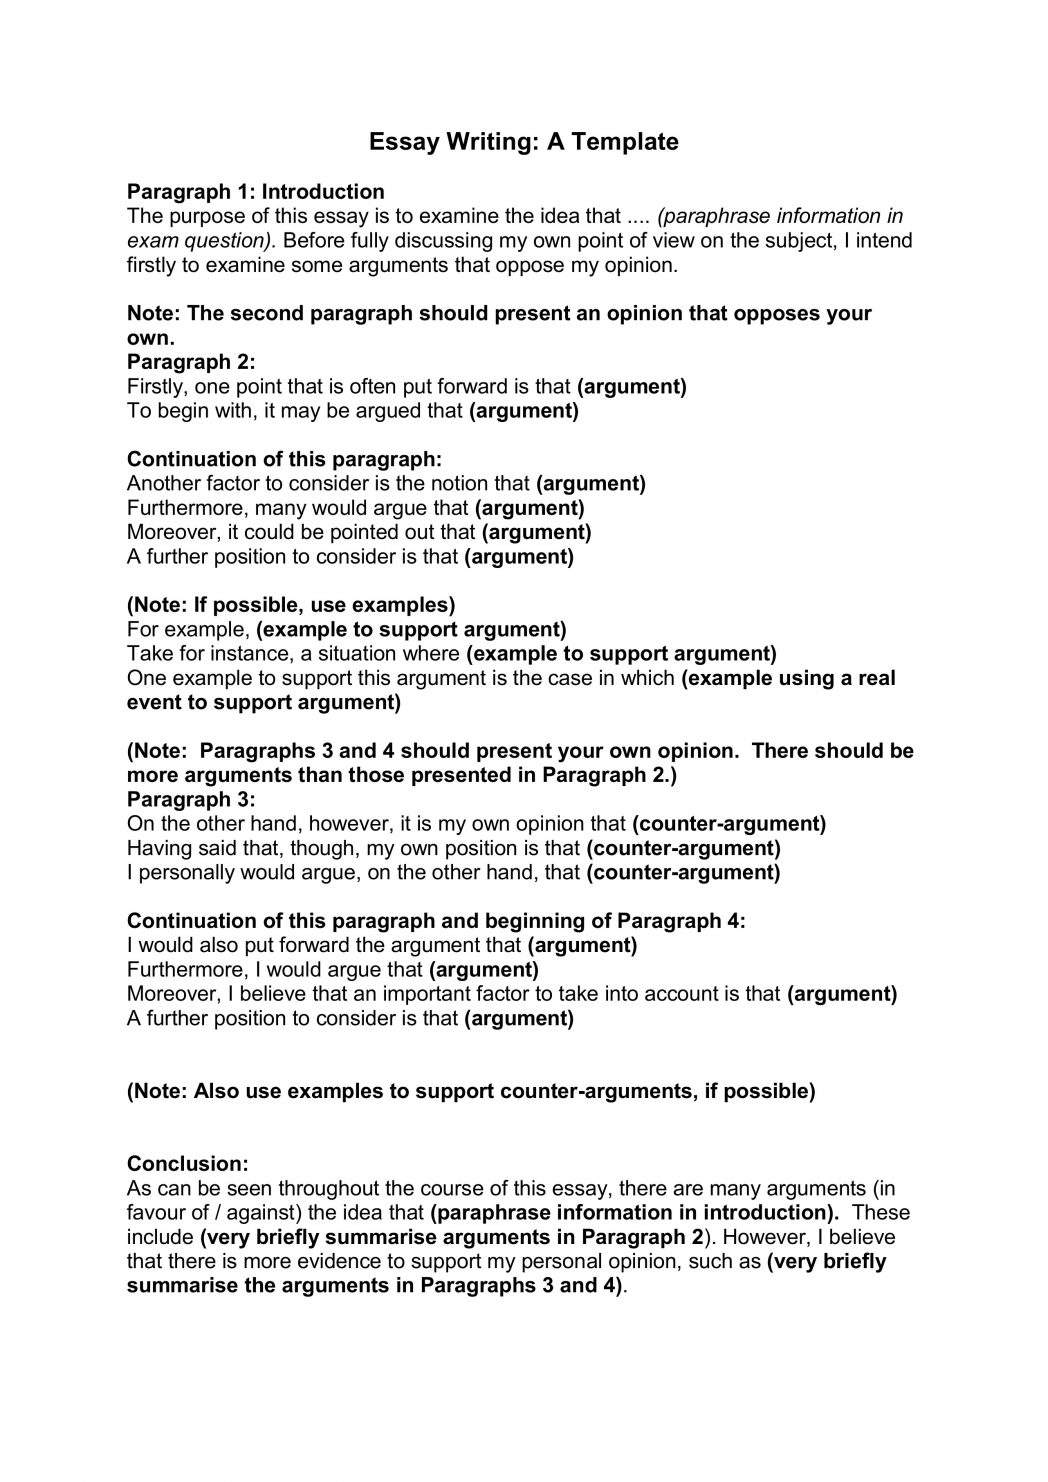 011 Opinion Essays Essay An Learnenglish Teens How To Write Esl Writing Template For P Simple Example In Ielts Introduction Balanced Persuasive Legal Successful 1048x1482 Shocking Argumentative 5th Grade Video Full